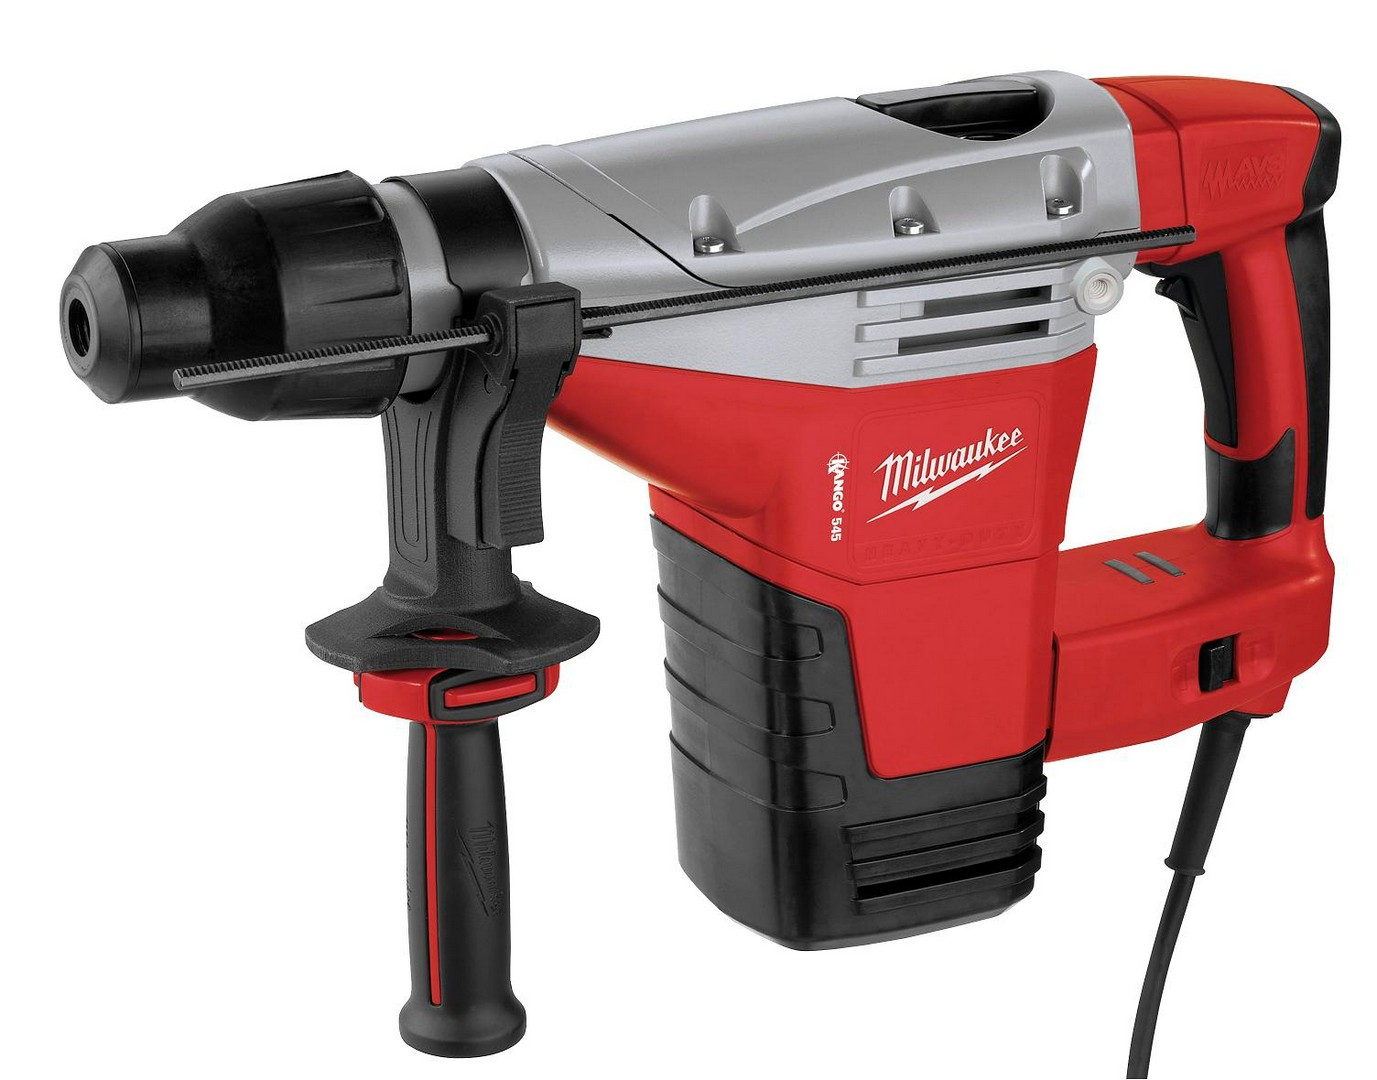 Medium Duty Combi Hammer - Milwaukee 545S SDS